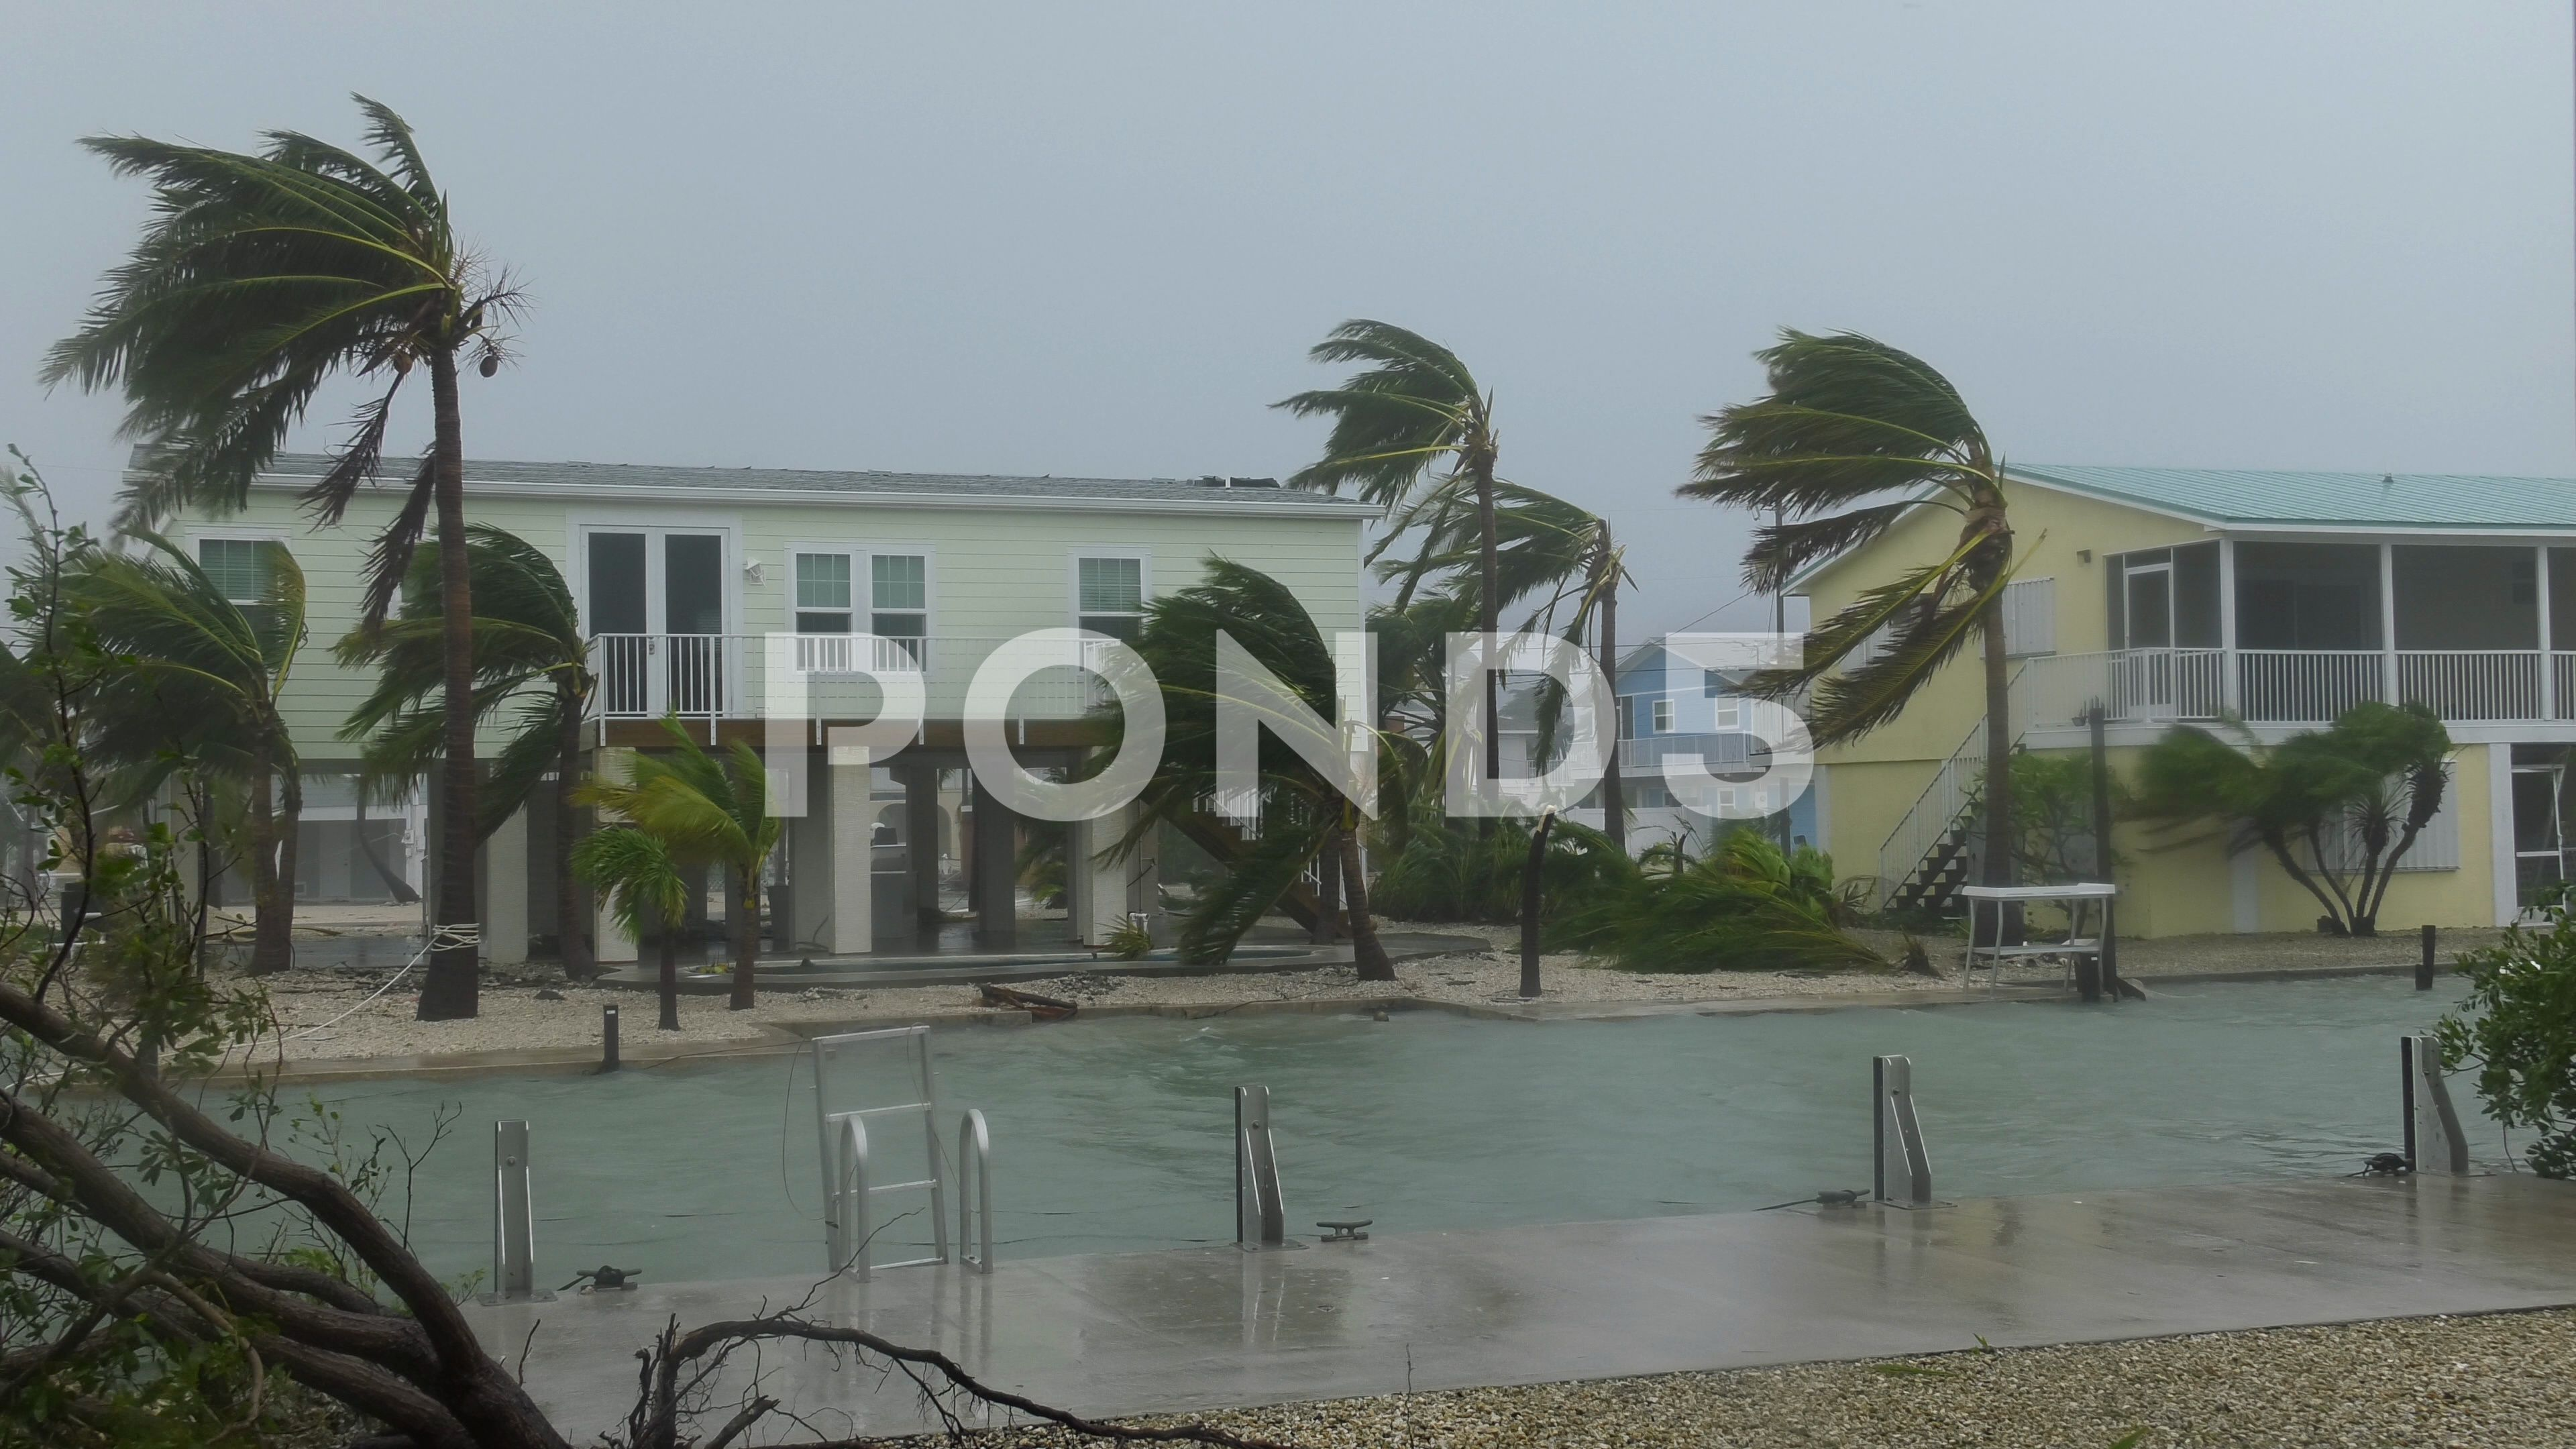 Hurricane Winds Subside As The Eye Nears Stock Footage Ad Subside Winds Hurricane Eye Hurricane Winds Creative Flyer Design Wind